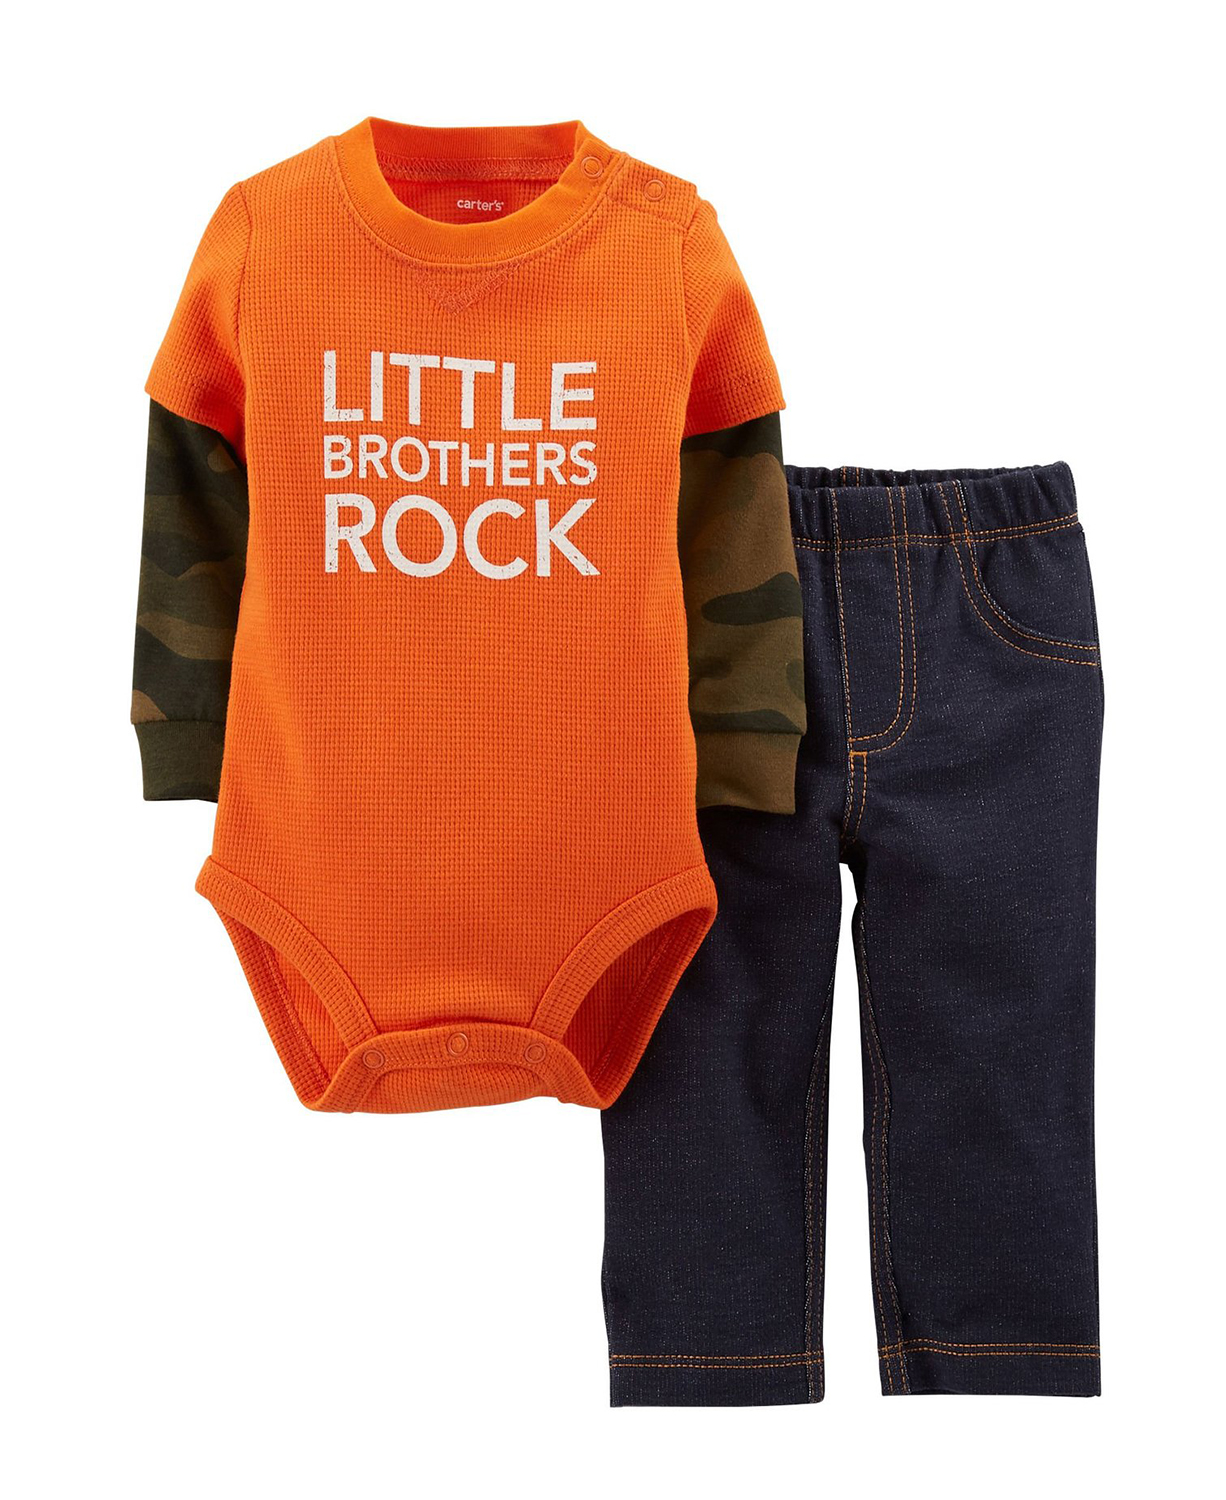 Carter 39 s baby bodysuits cute comfy brothers rock set for Big brother shirts for toddlers carters